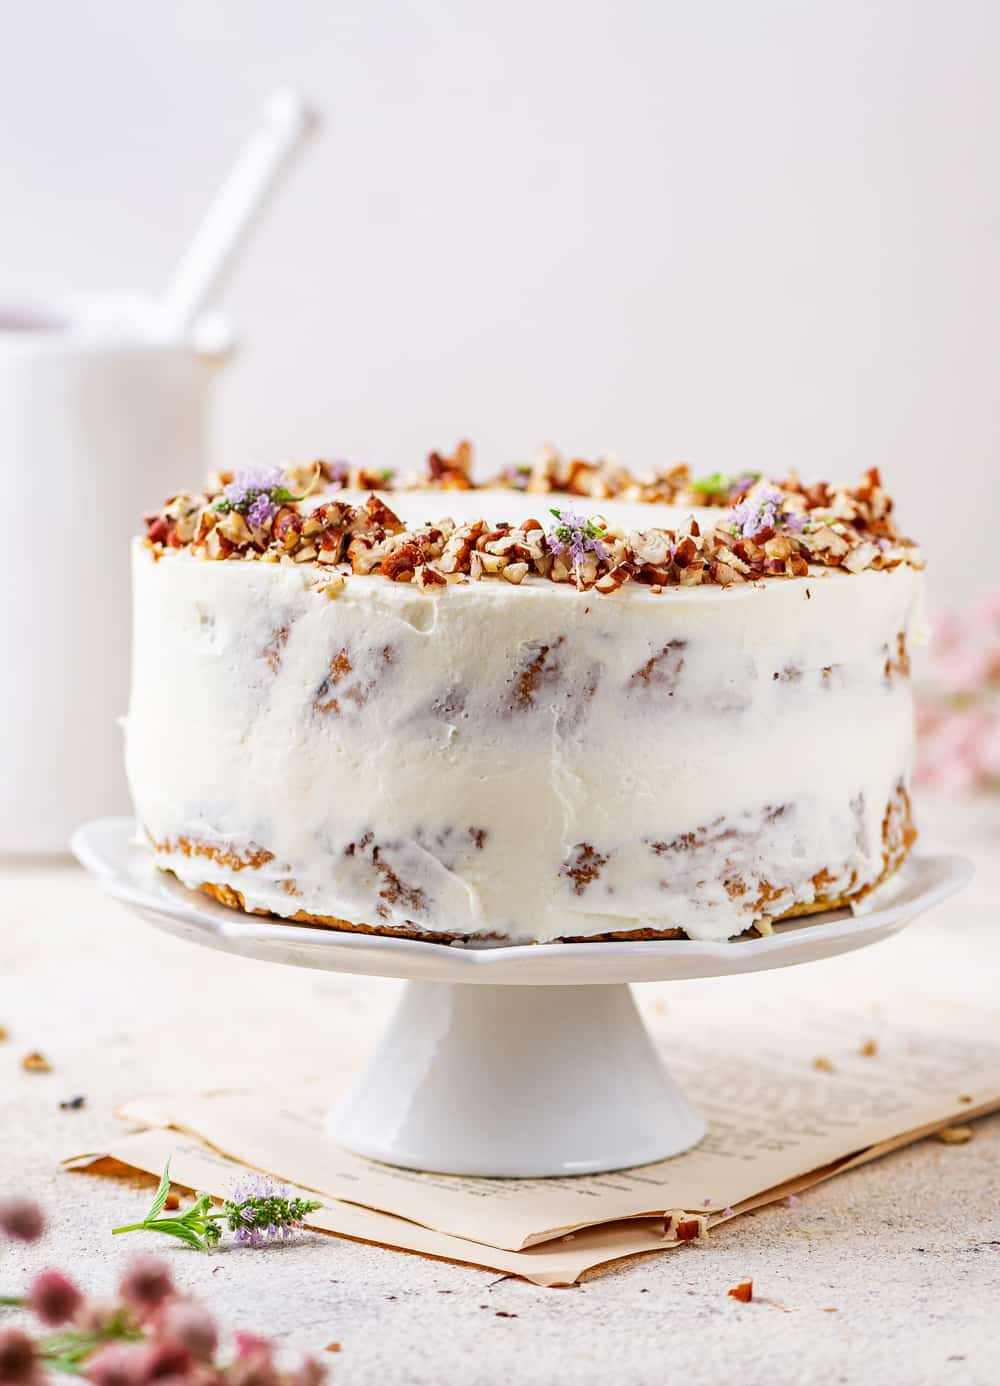 Carrot Cake topped with pecans on a white serving tray.